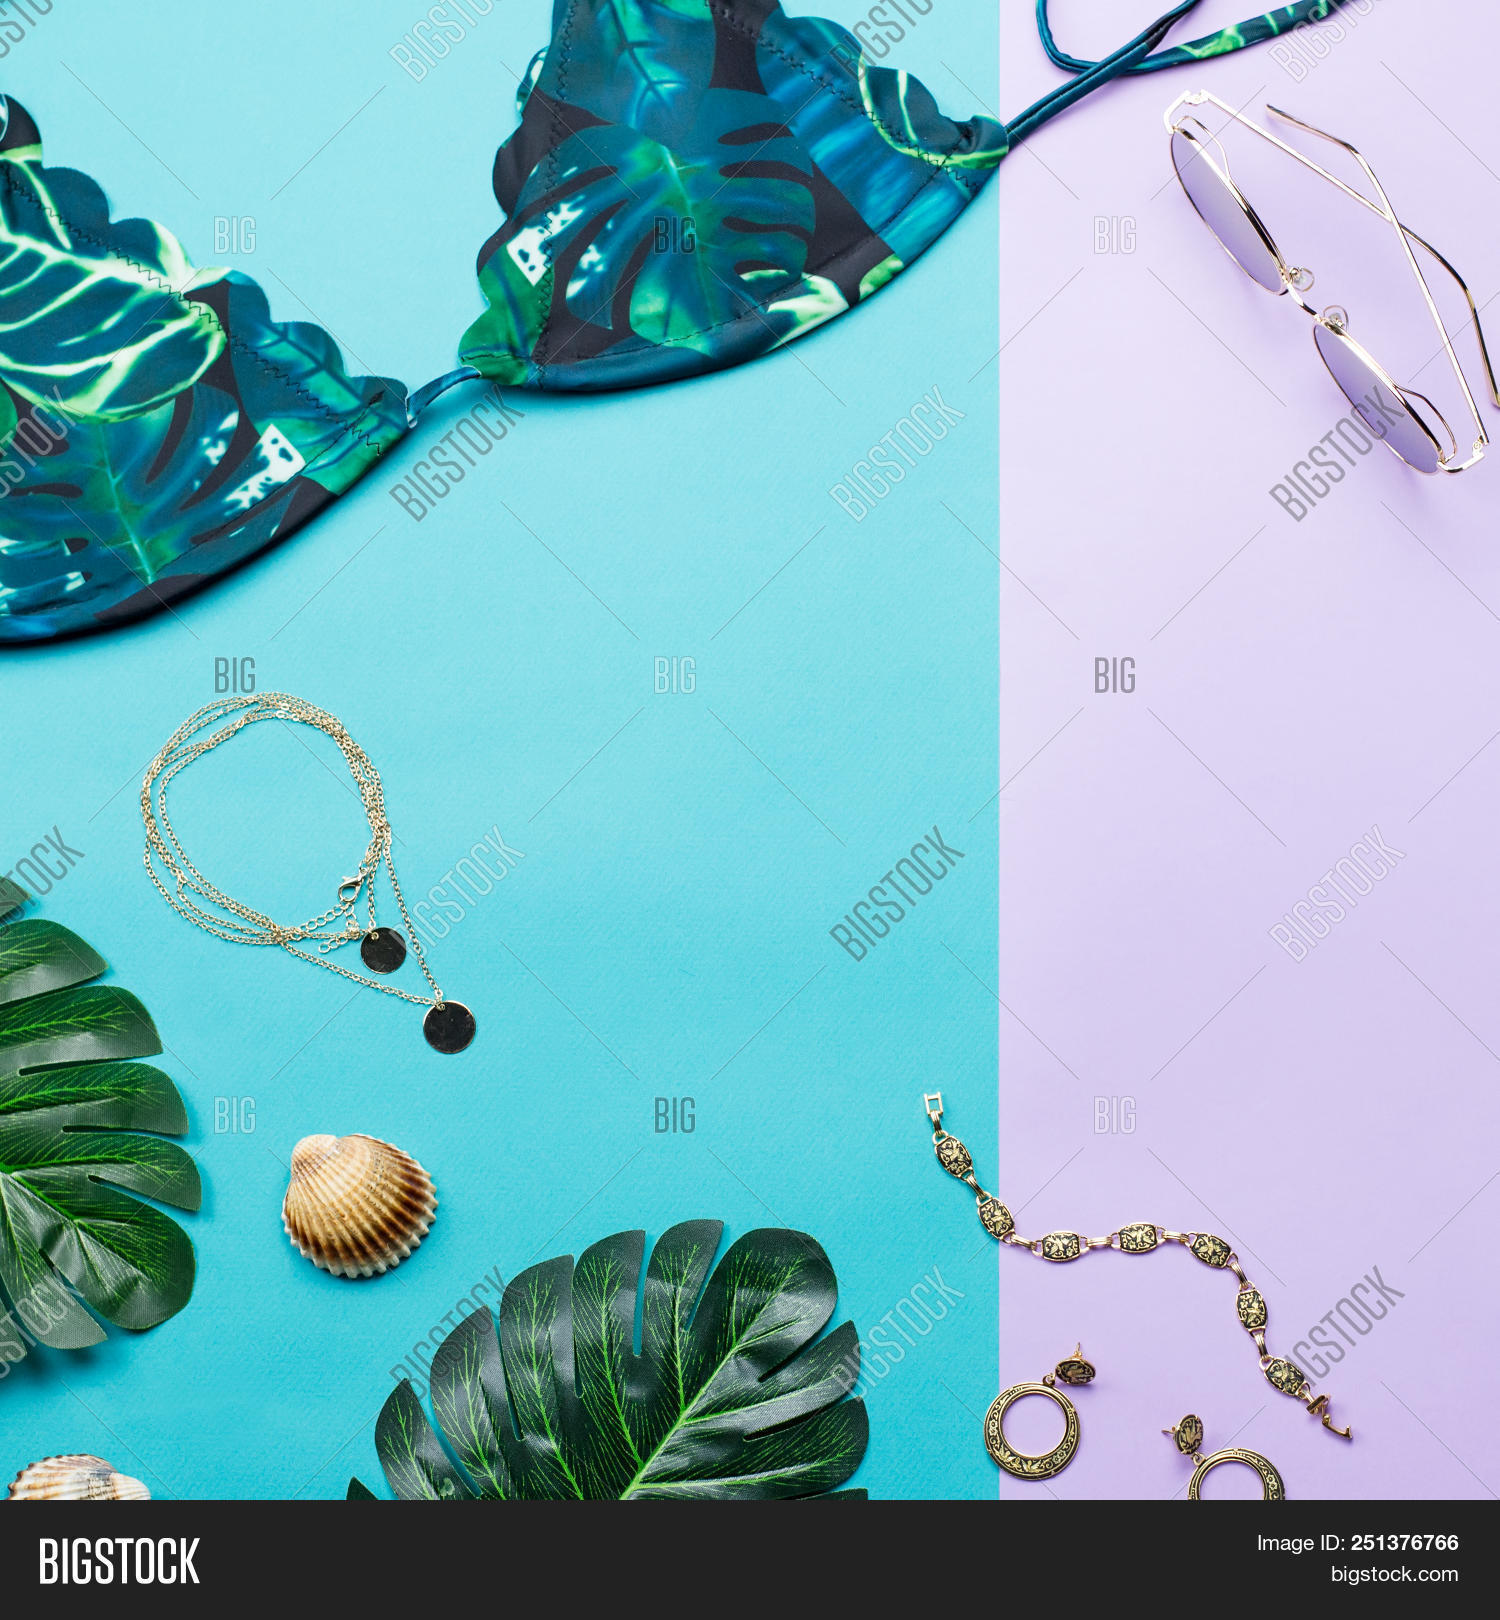 a7bbd944 Tropical bikini swimsuit and woman accessories, beach fashion. Traveler  accessories flat lay with female swimwear, palm leaves. top view